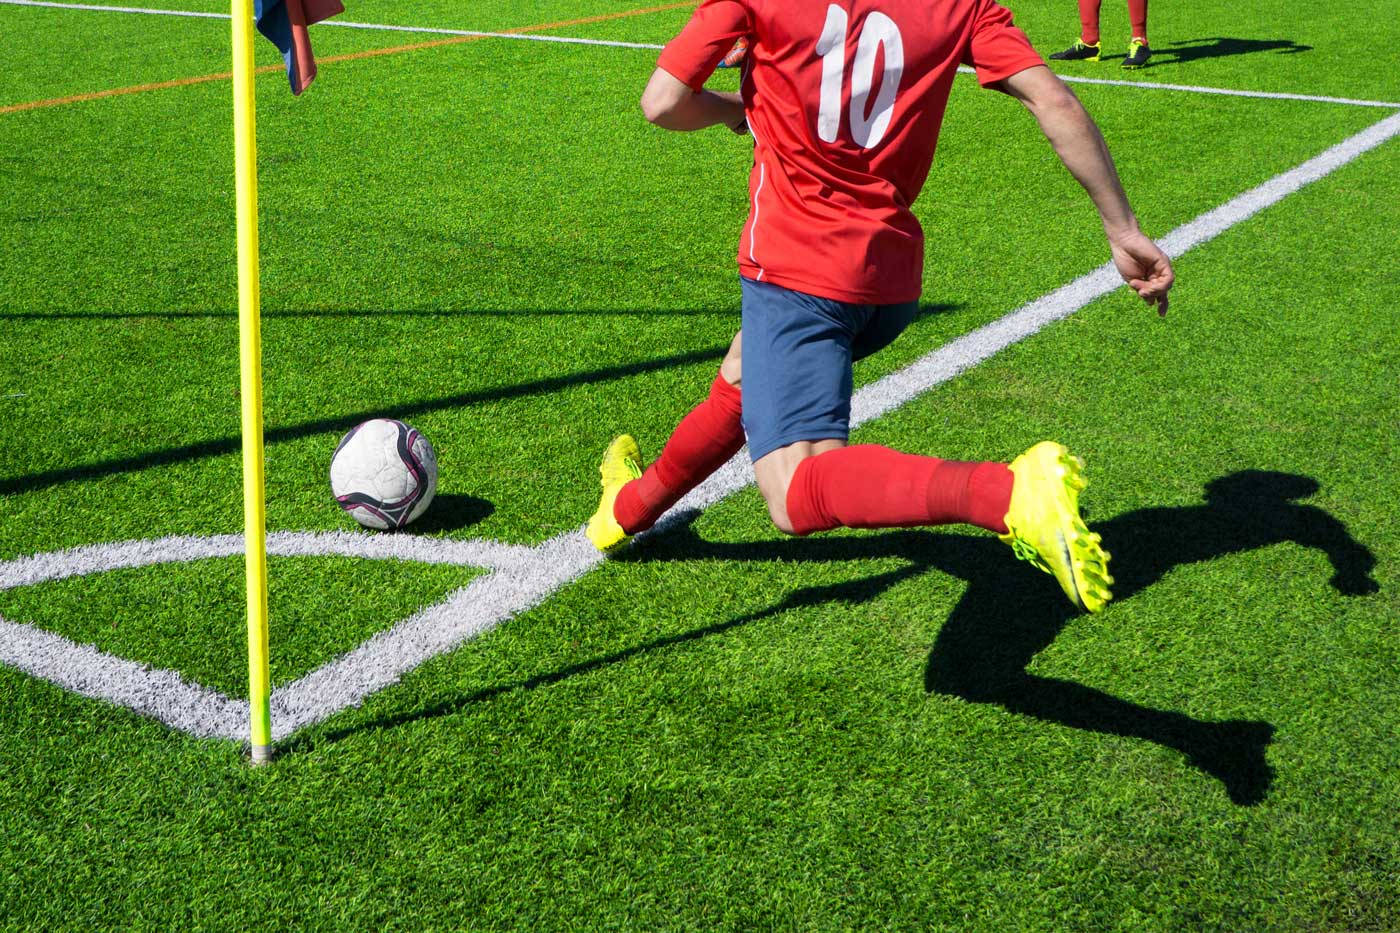 Red uniformed player kicking a corner penalty kick.